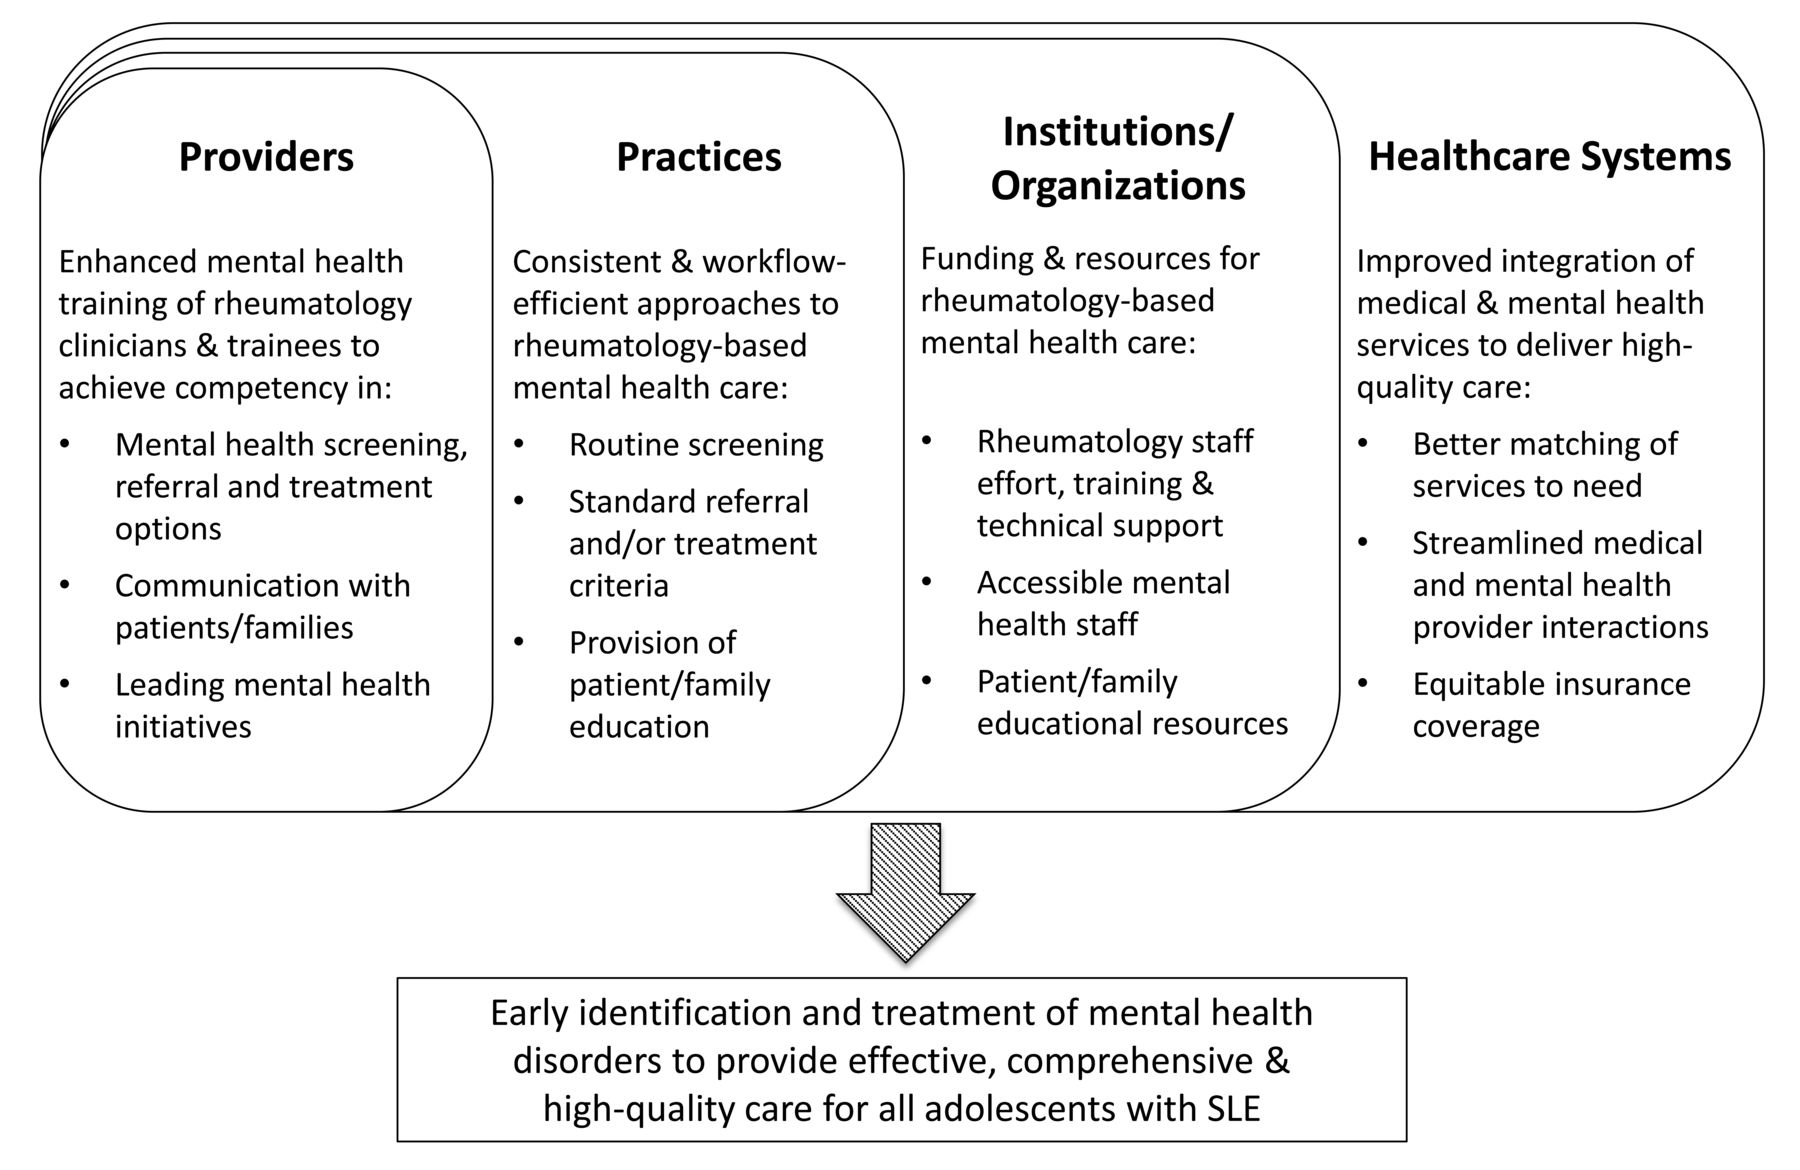 Identifying Targets for Improving Mental Healthcare of Adolescents